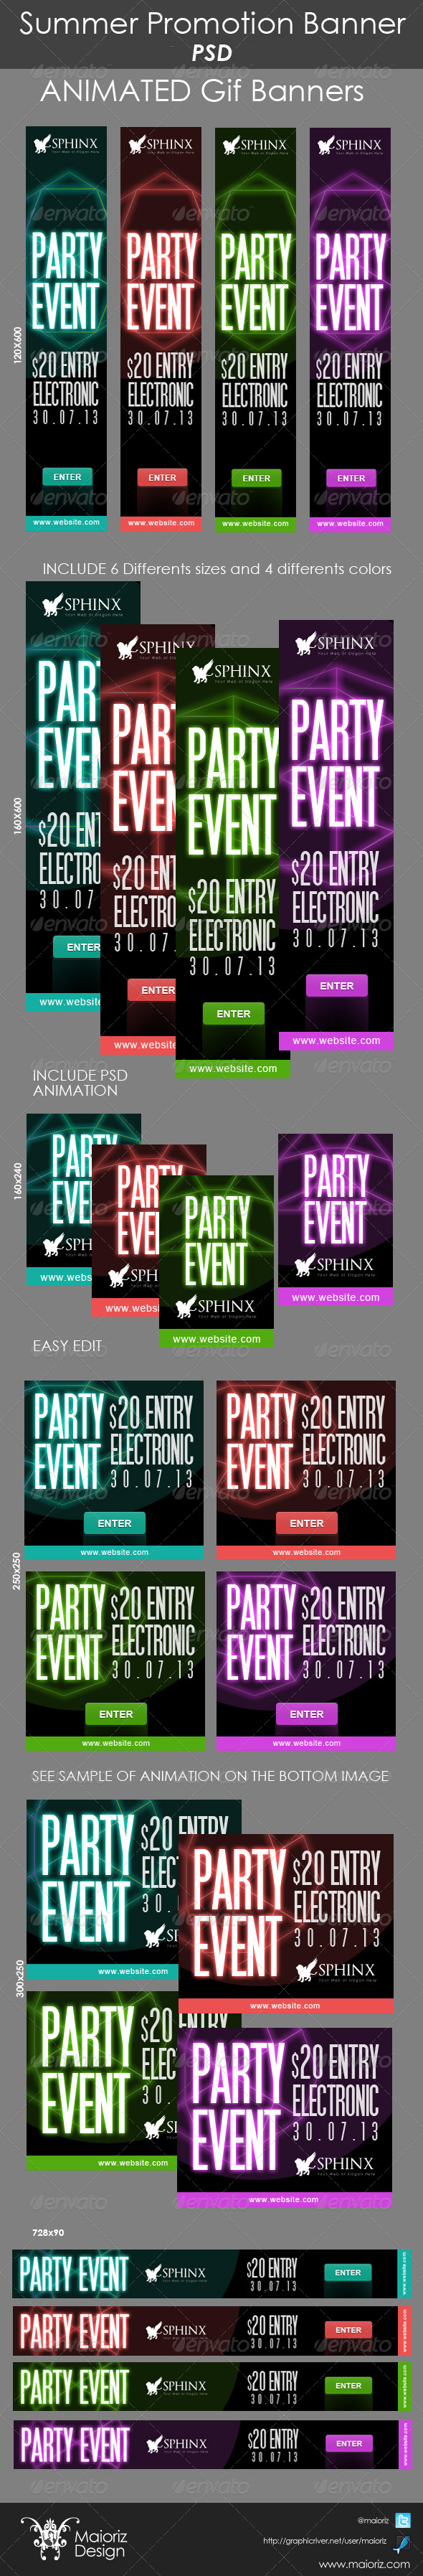 GraphicRiver Party Promotion Banners 4708300